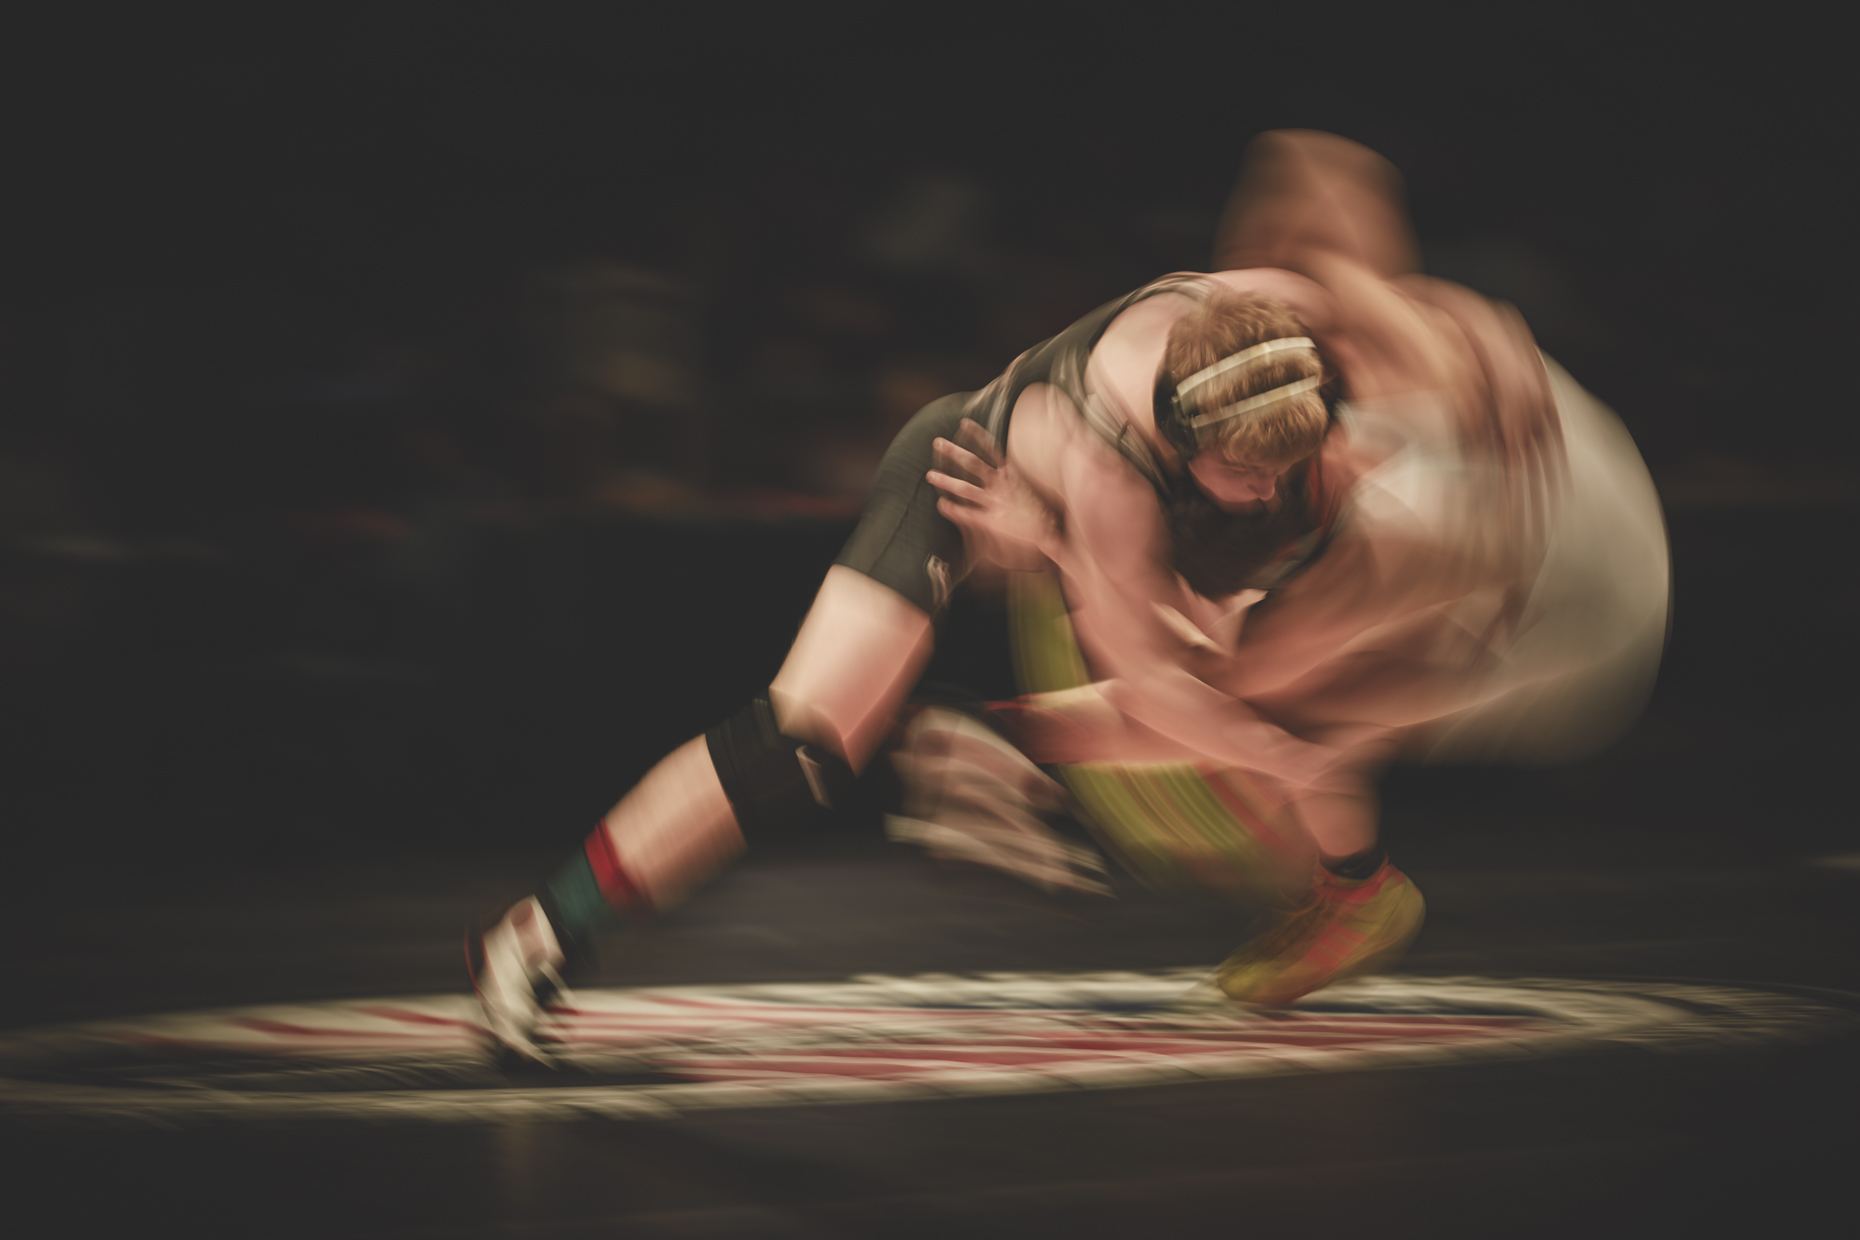 Action Photography Derek Israelsen 001 Wrestlers High School